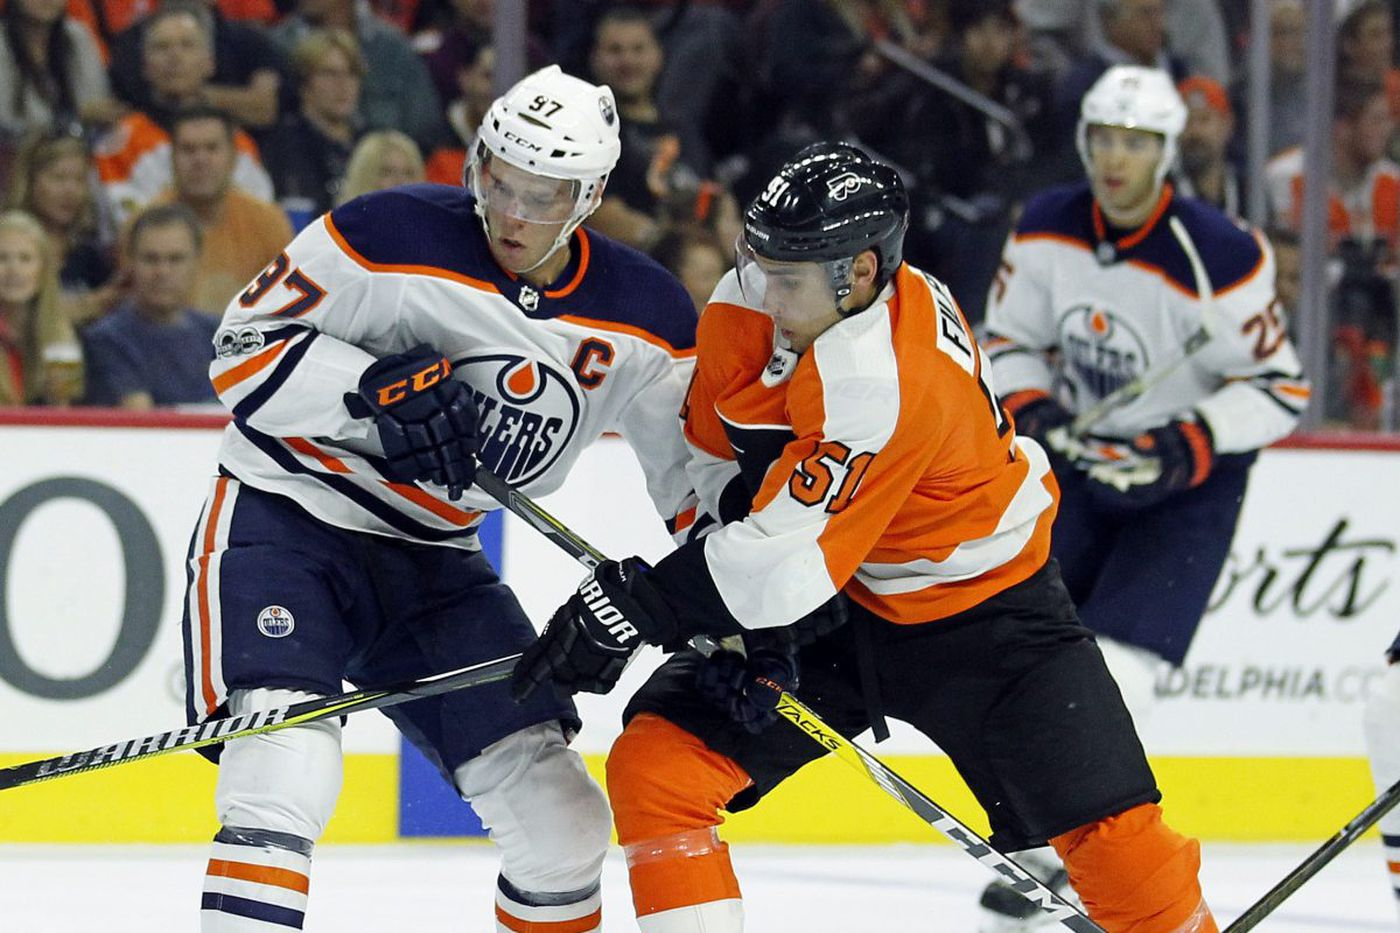 Relieved Flyers looking for a rare winning streak